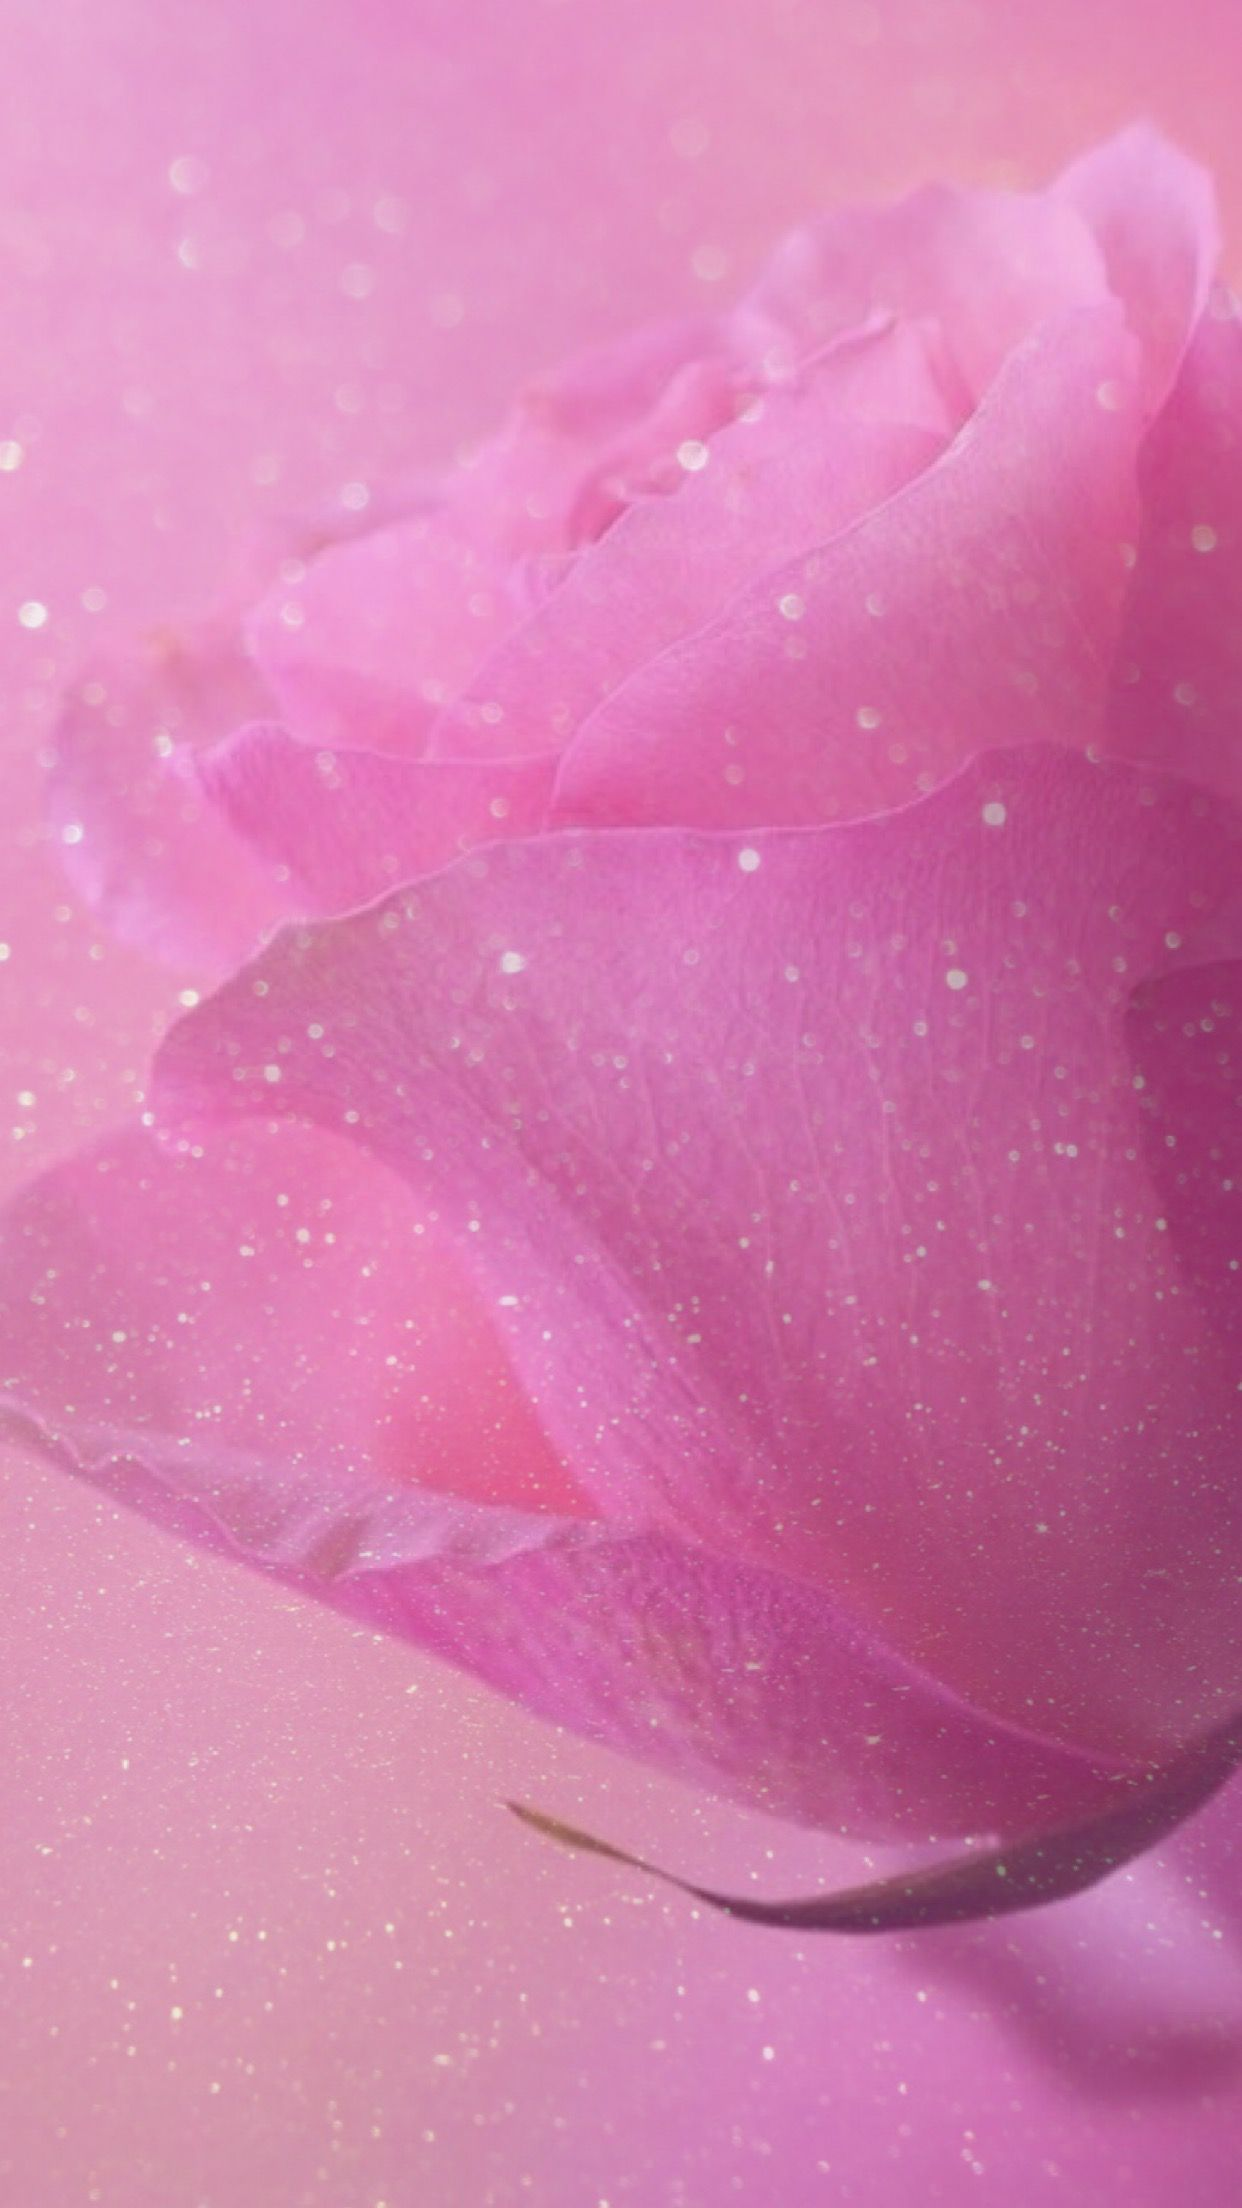 Rose Sparkle Glitter Wallpaper Background Pink Pretty Girly